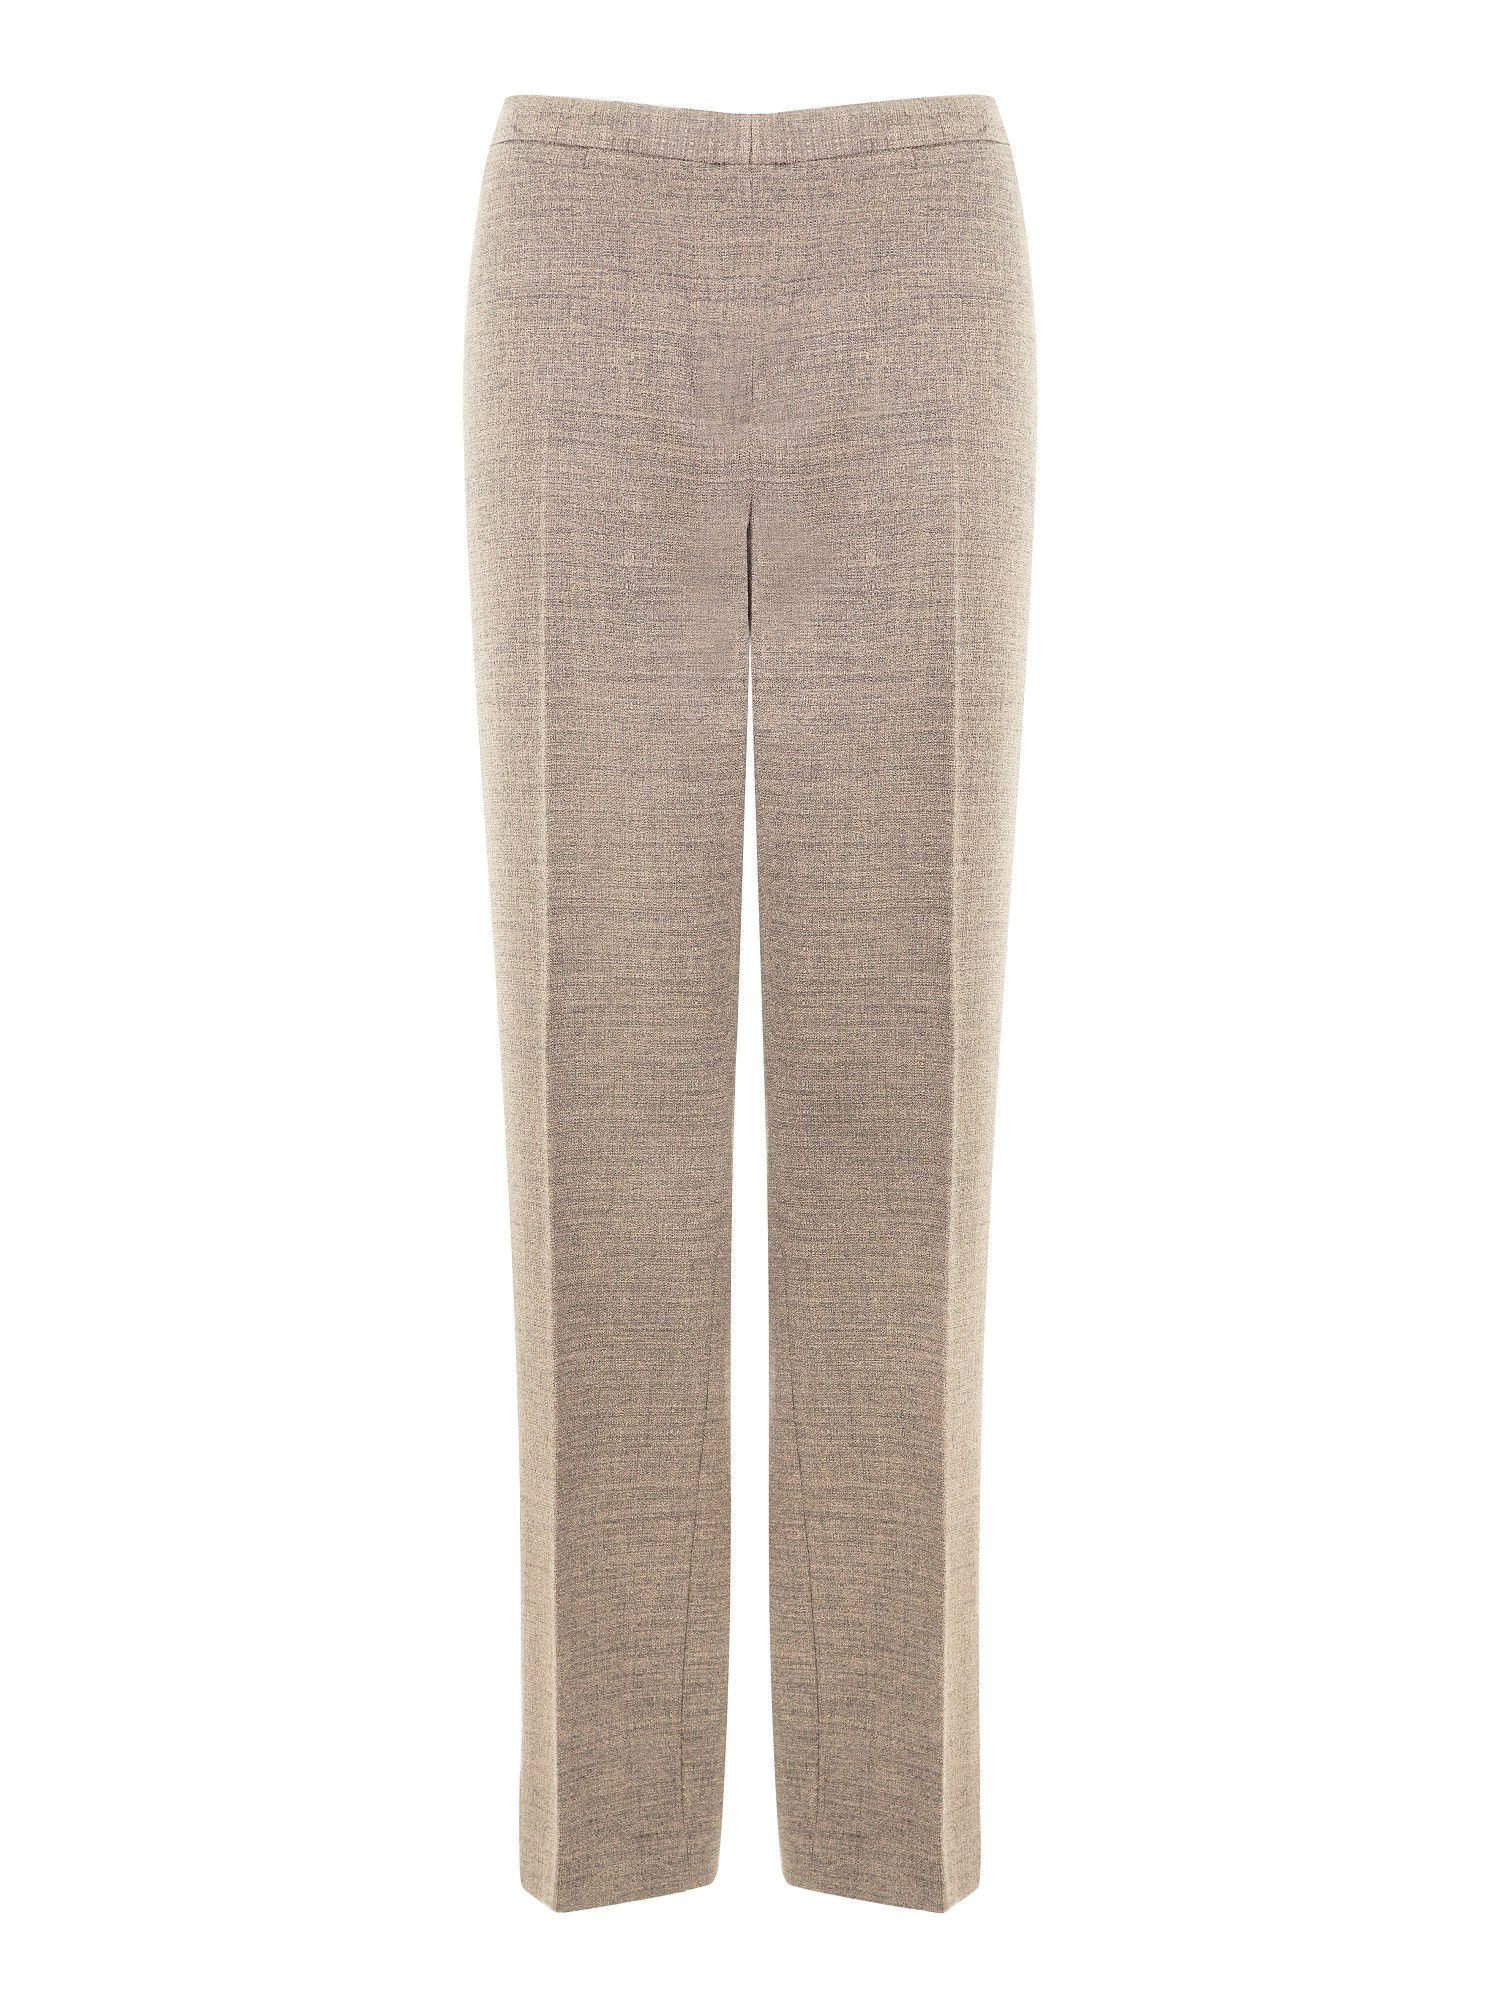 Mink tailored trouser